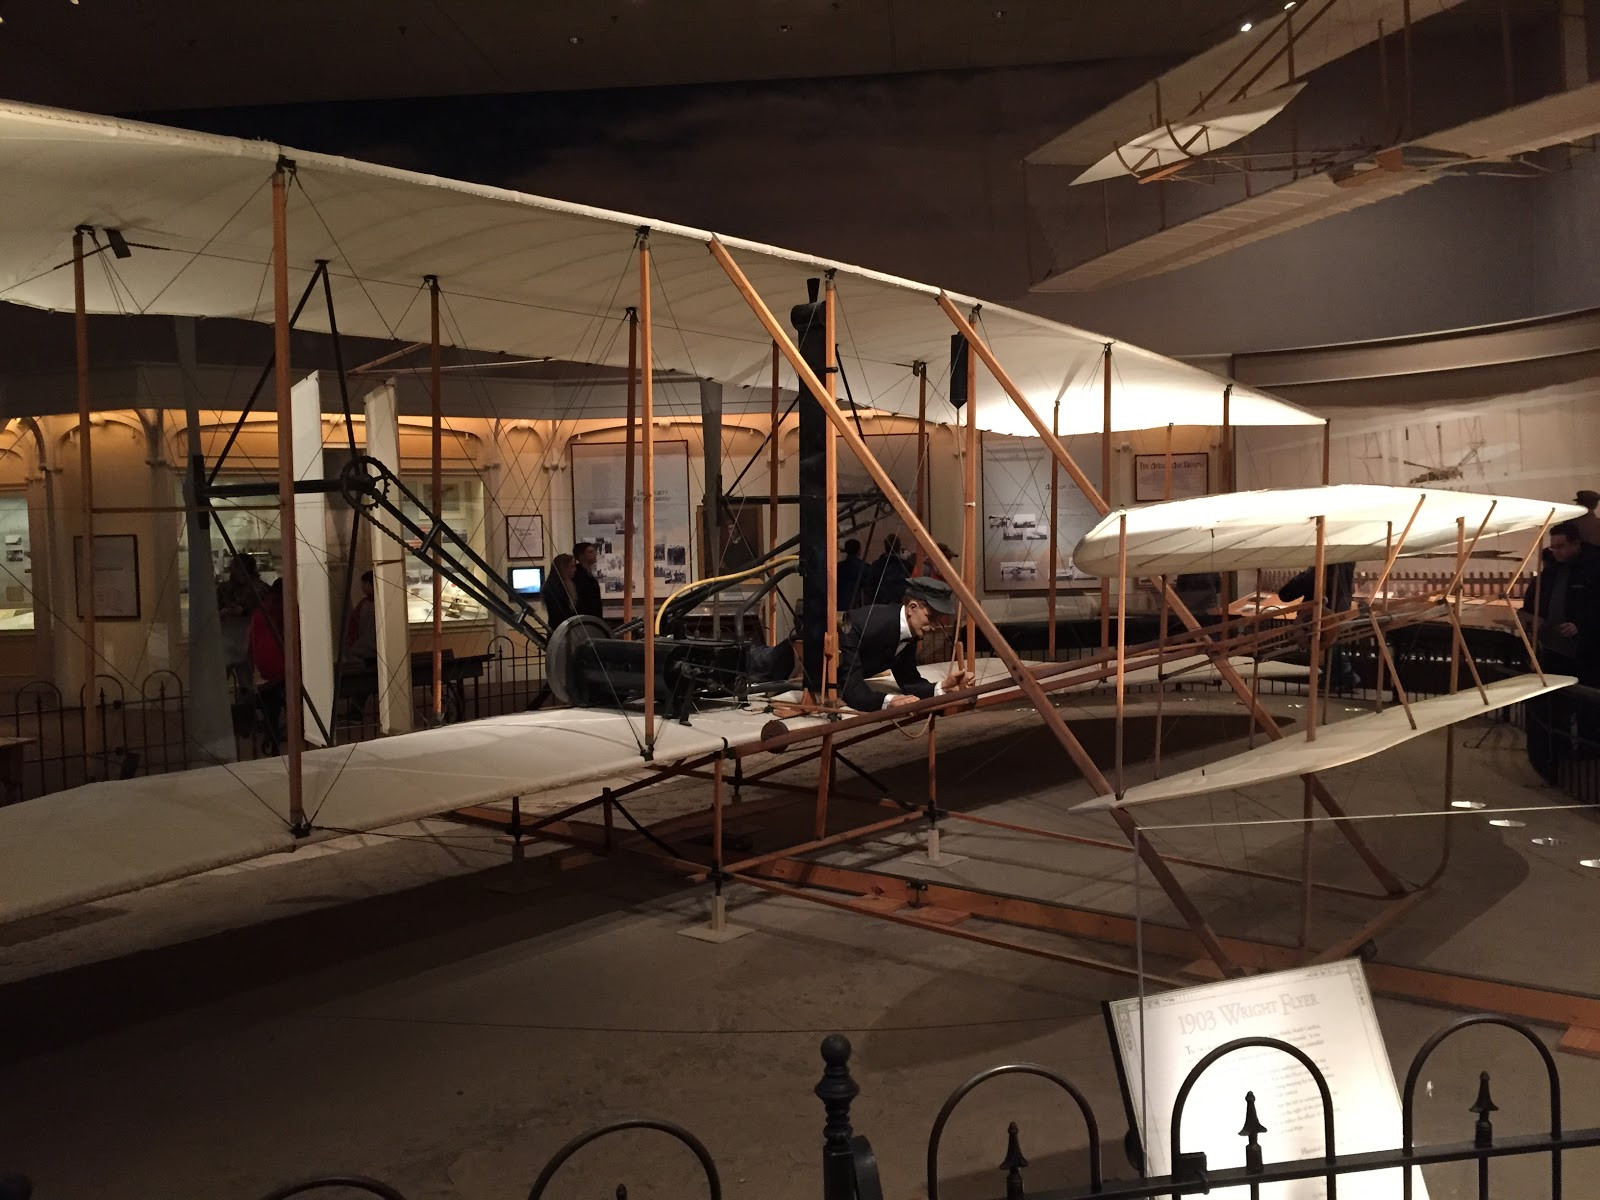 wright flyer 1903 in museum